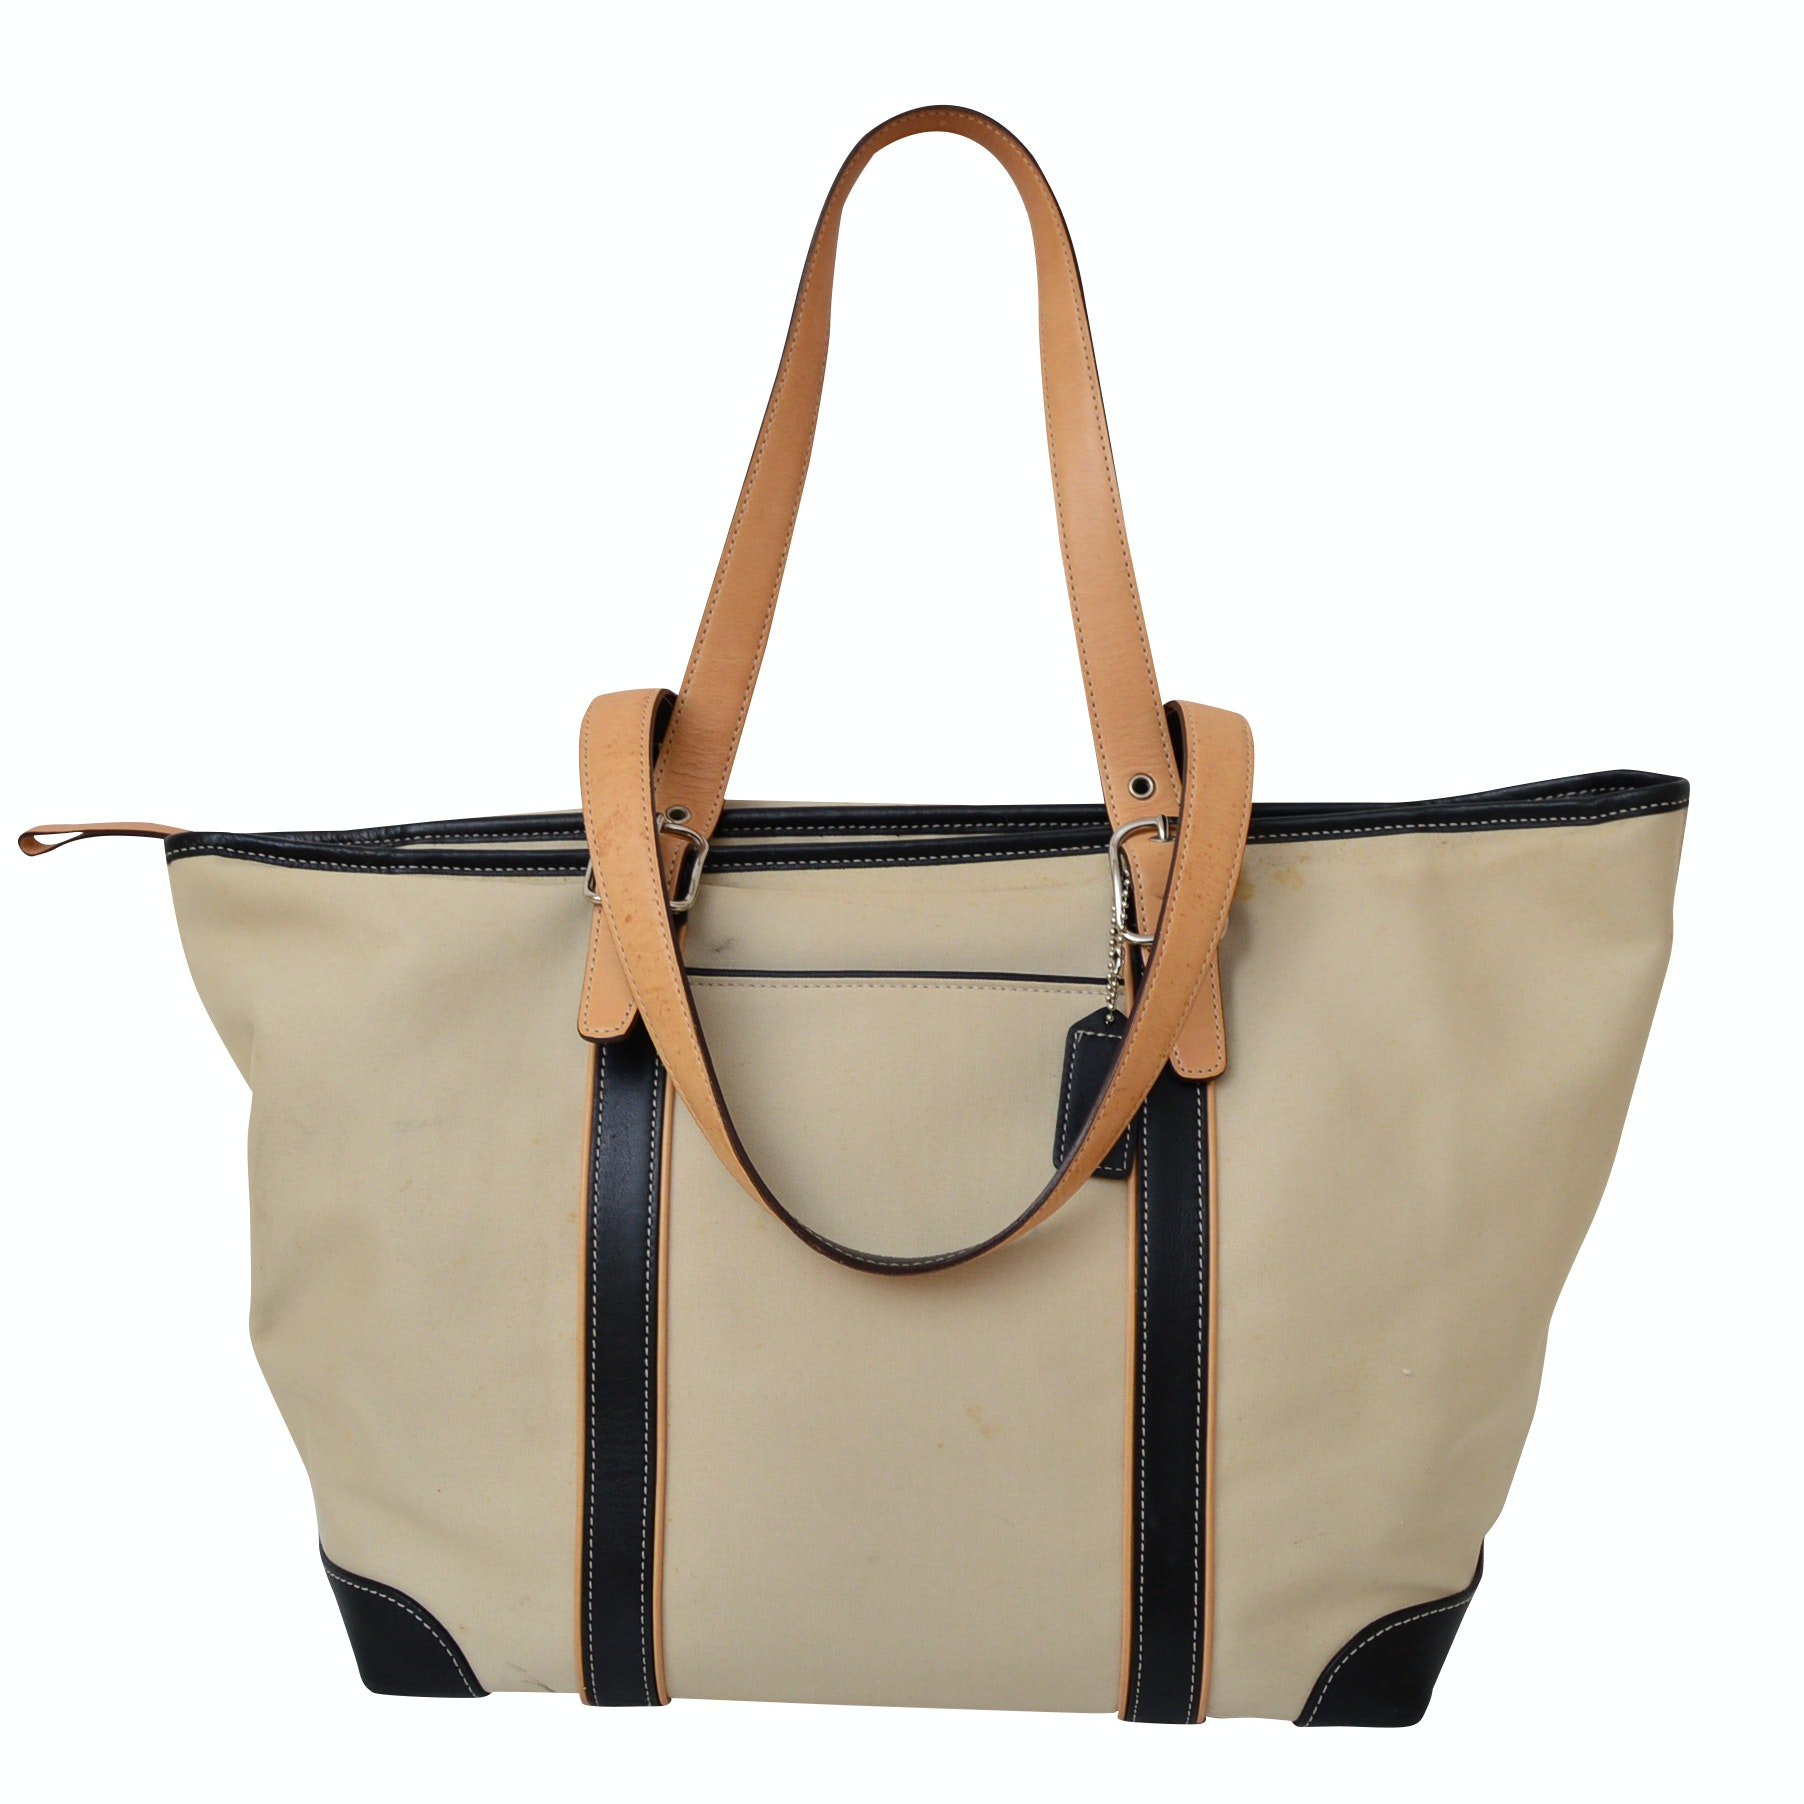 Coach Leather-Trimmed Canvas Tote